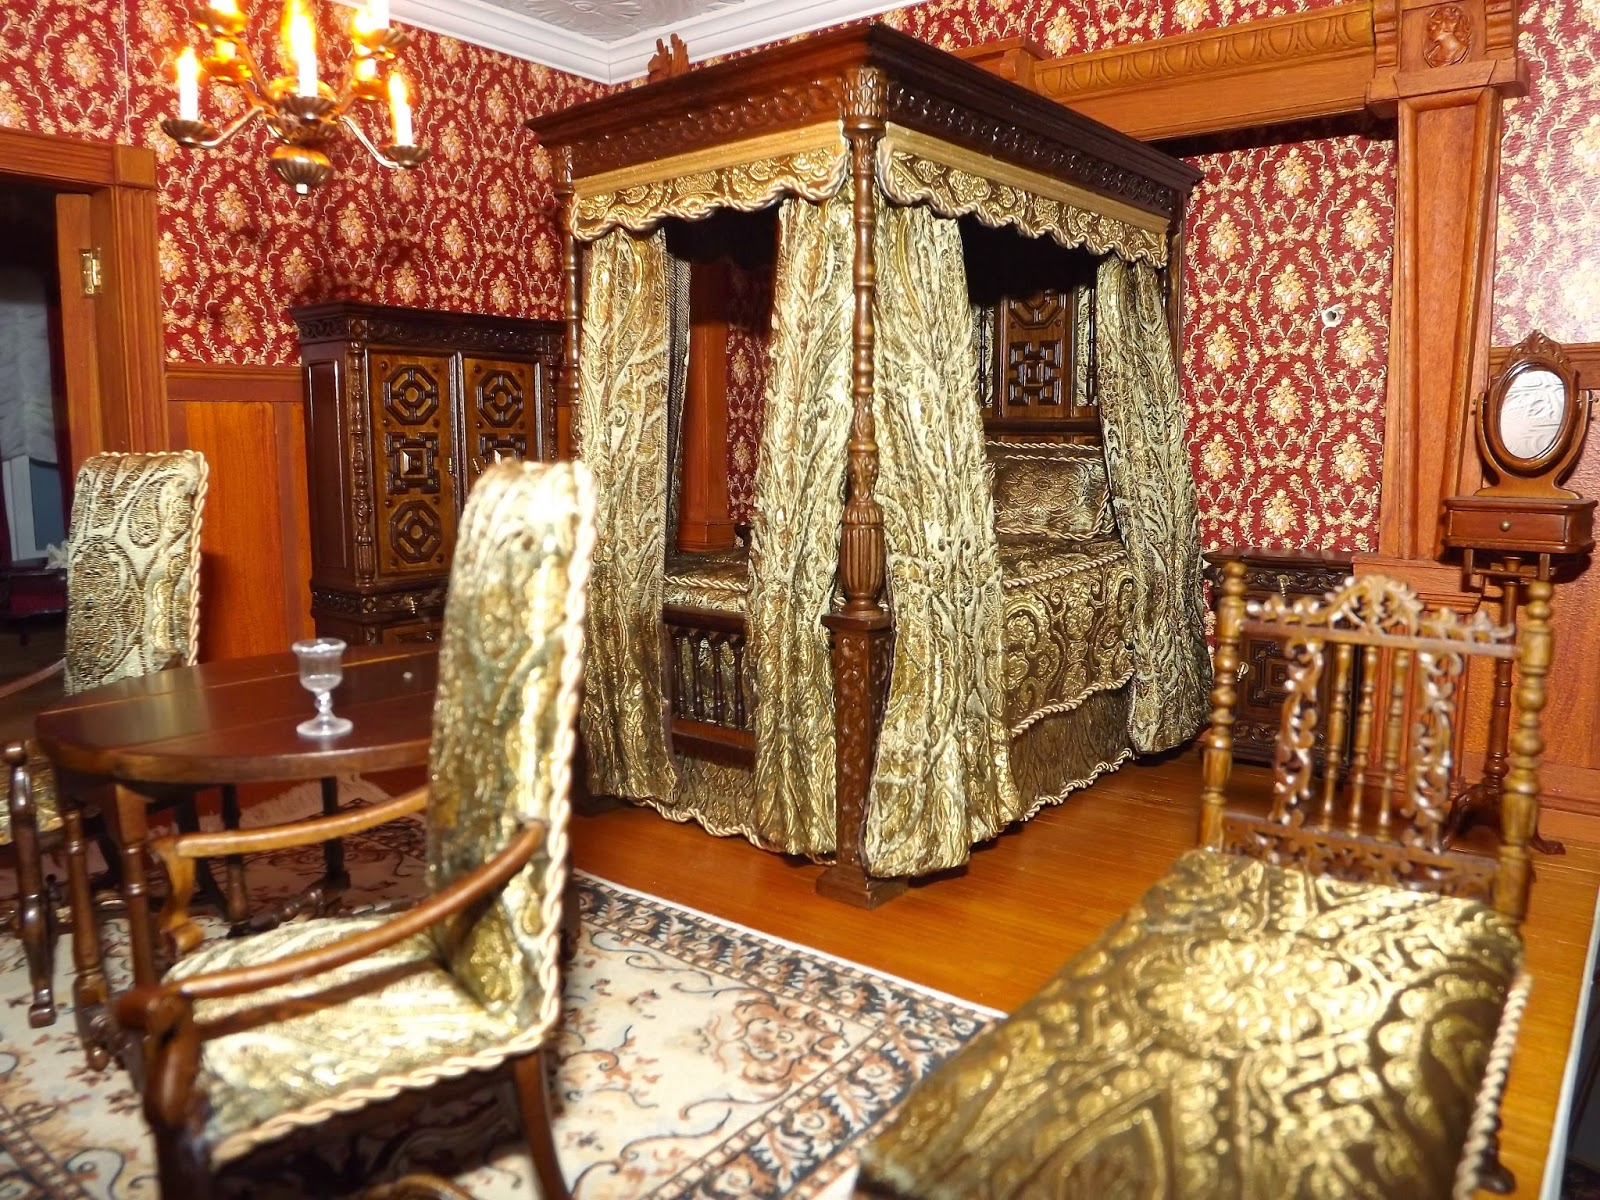 Late Victorian English Manor Dollhouse 1 12 Miniature From Scratch The Earl 39 S Bedroom Is Finished